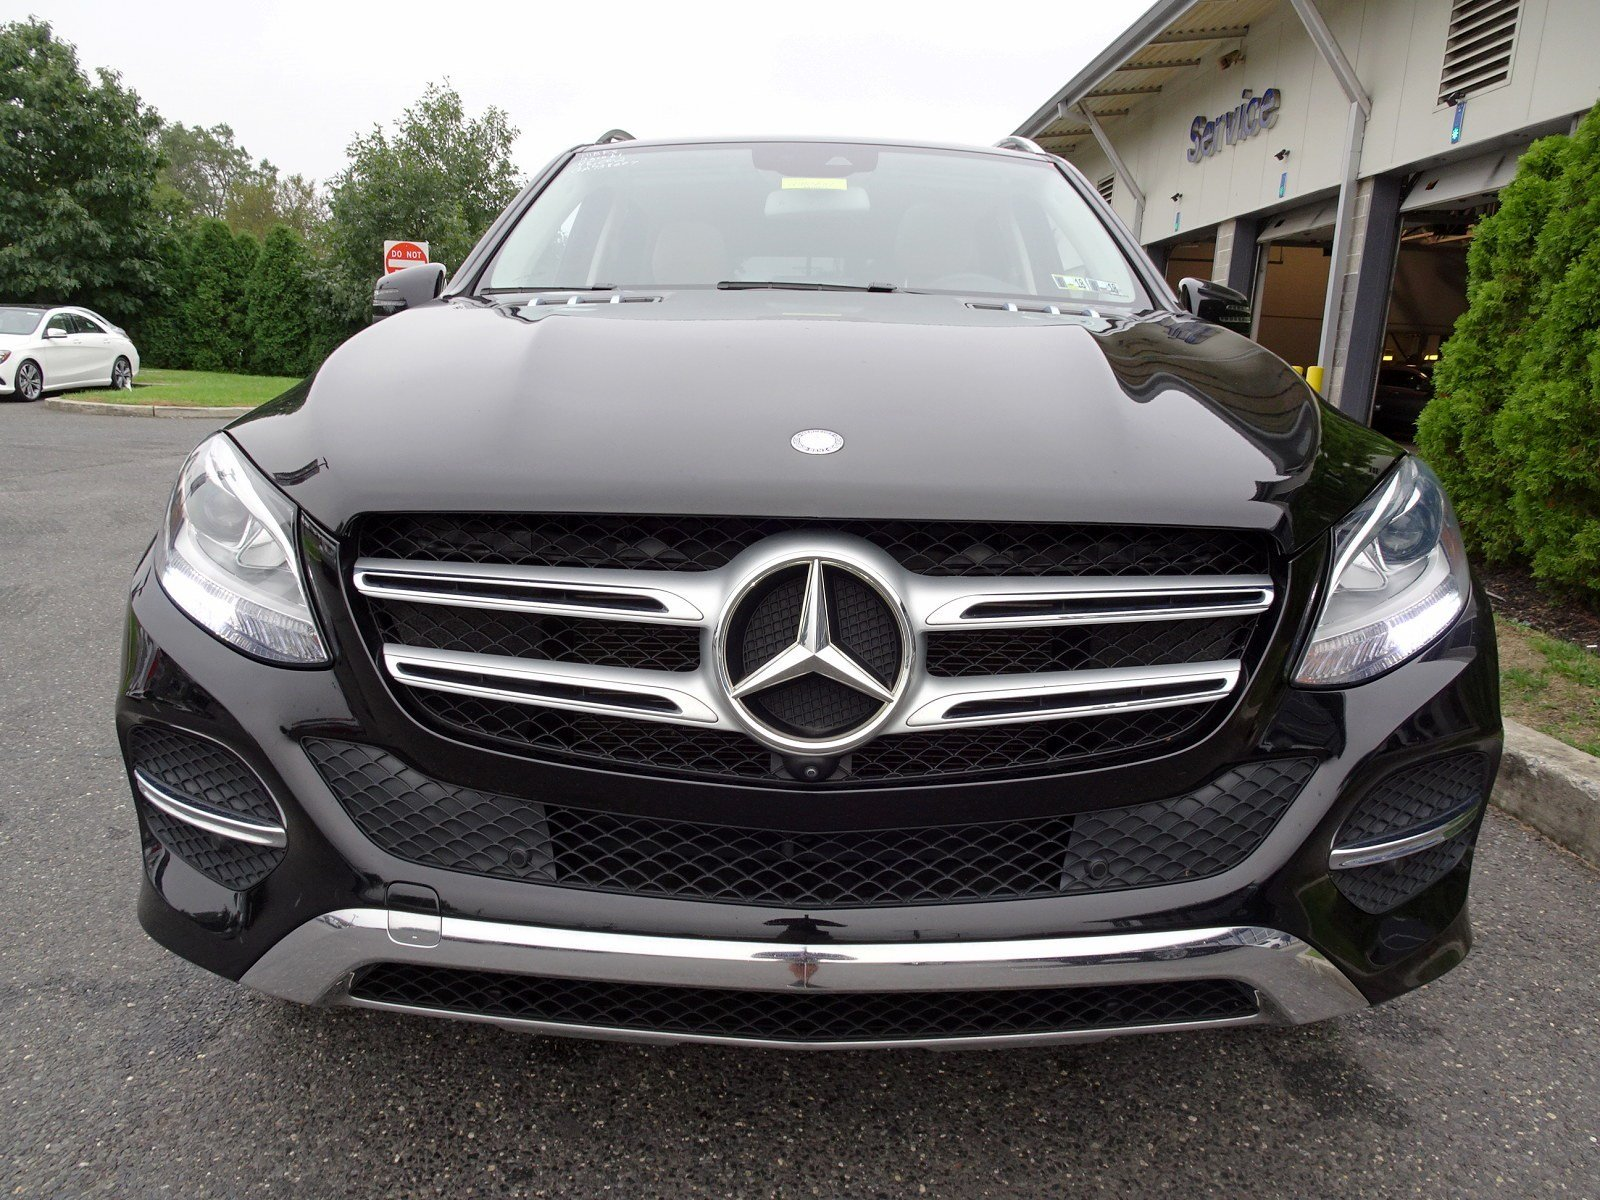 Certified Pre Owned 2016 Mercedes Benz GLE GLE 350 SUV in Cherry